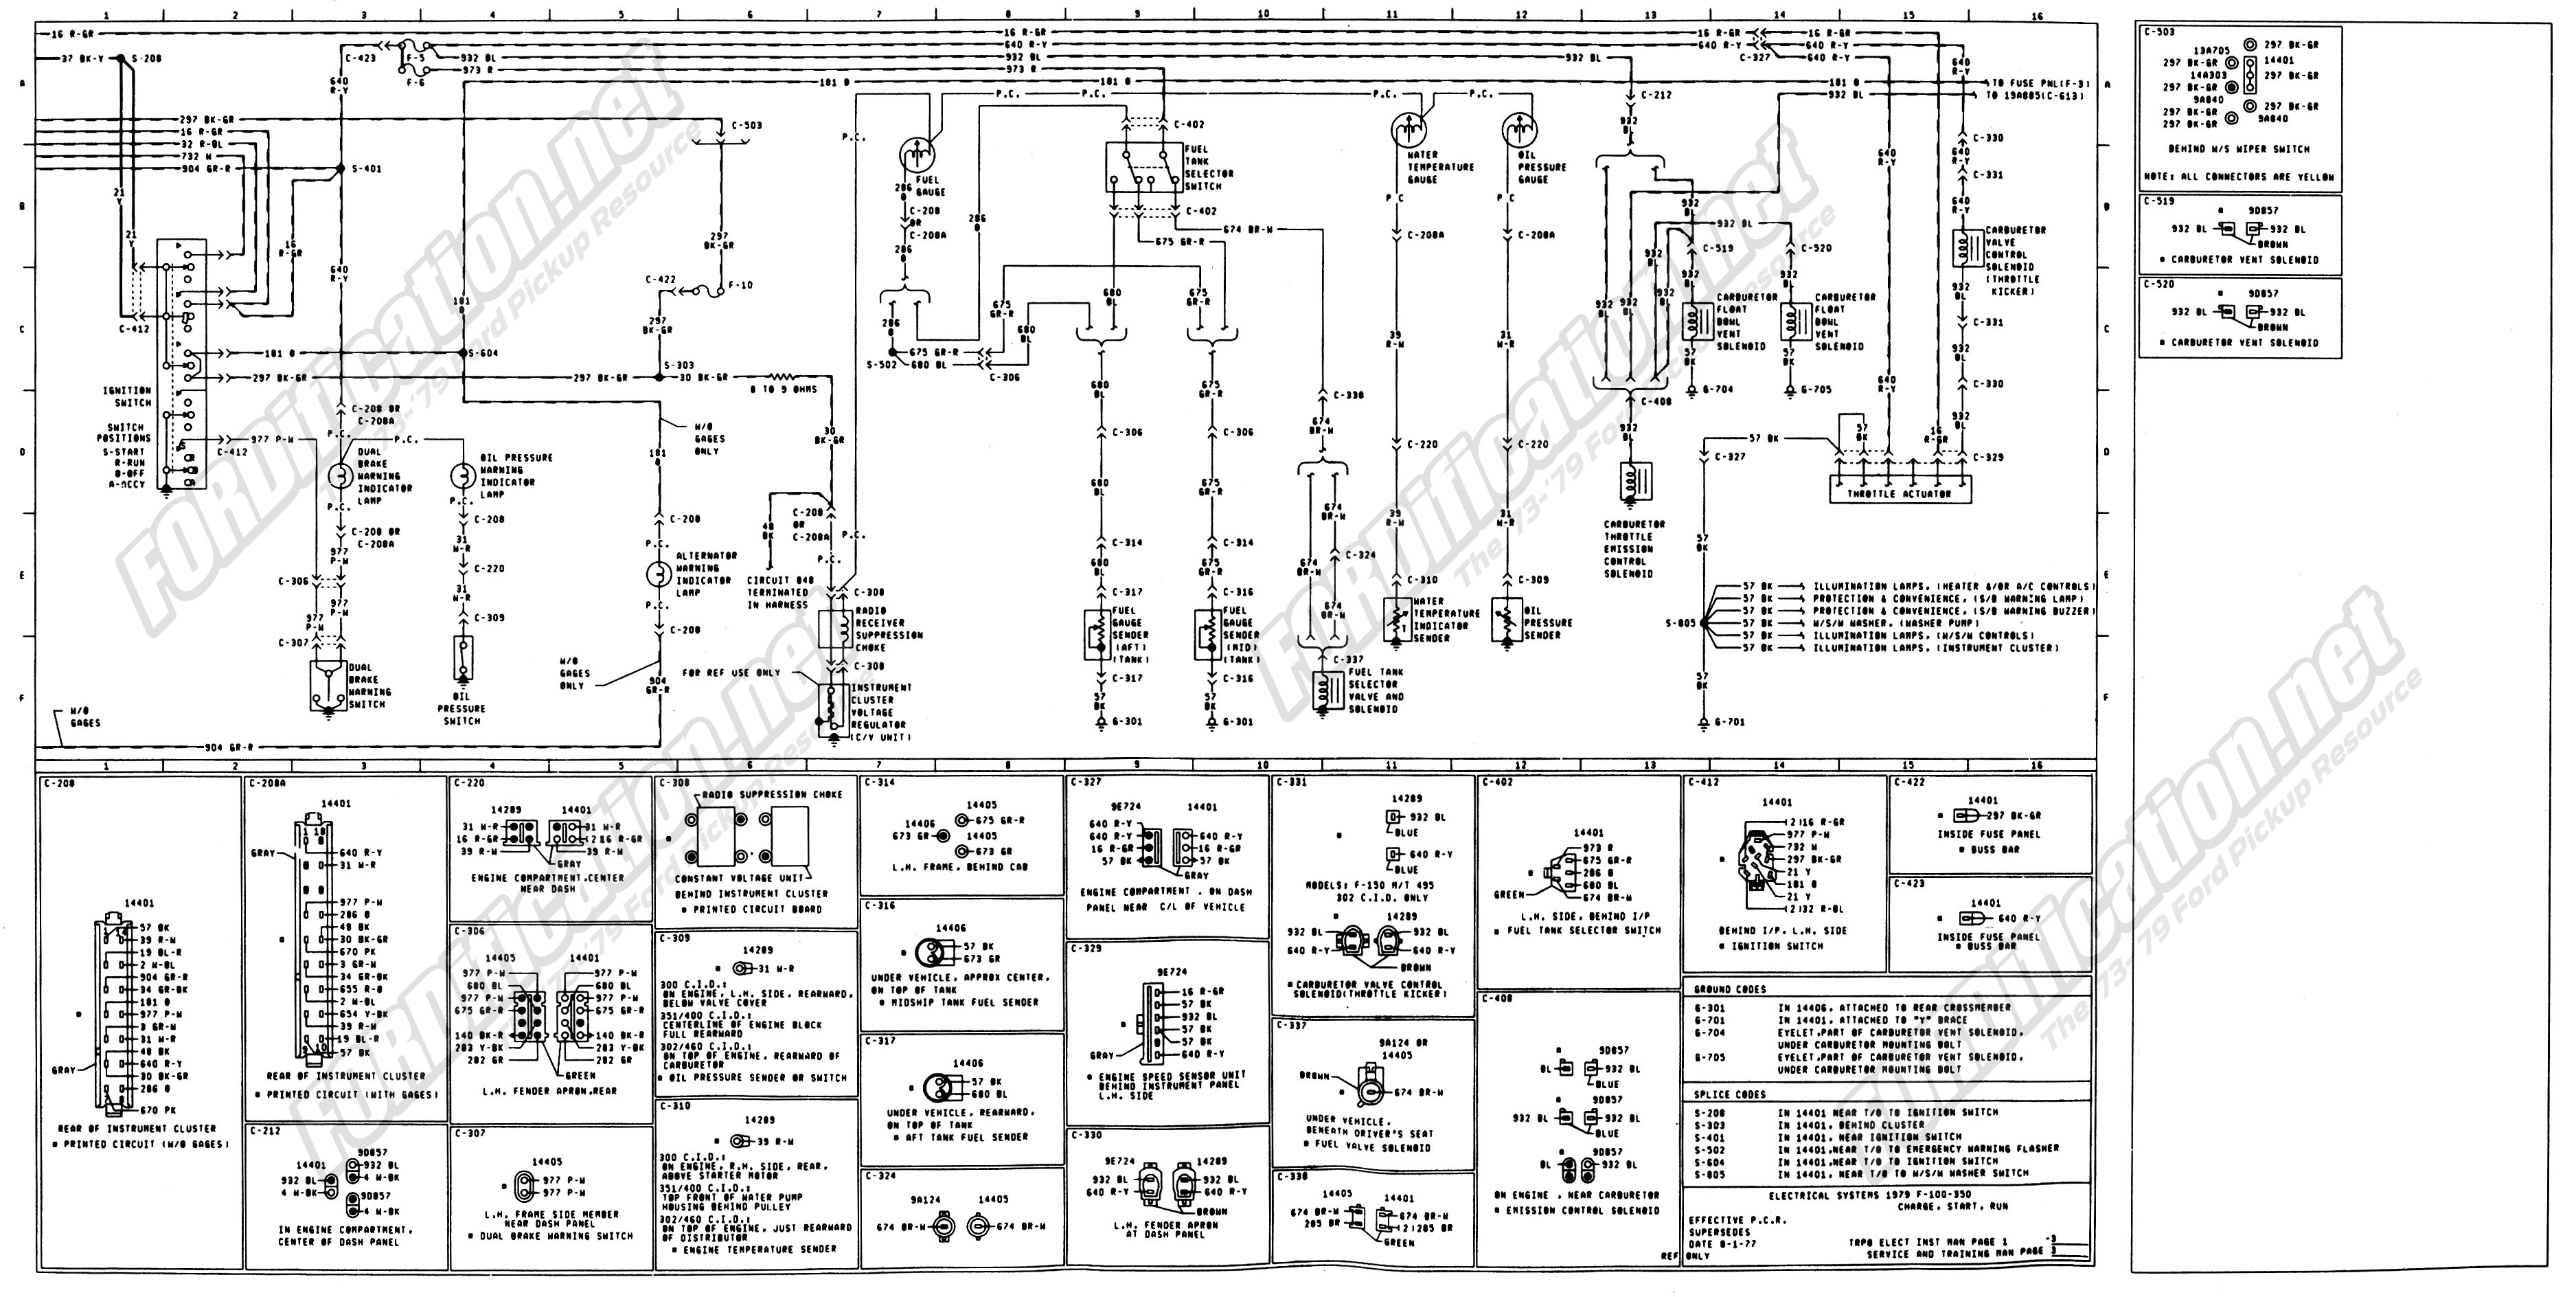 Chevrolet C Fuel Gauge Wiring Diagram on 47 international trucks wiring-diagram, 1985 chevy k10 wiring-diagram, 1987 chevy c30 wiring-diagram, 2005 chevy express wiring-diagram, 1986 chevrolet silverado specs, kenwood dpx300u wiring-diagram, chevy 350 tbi wiring-diagram, 86 chevrolet caprice wiring-diagram, 1986 chevrolet silverado wiring diagram,